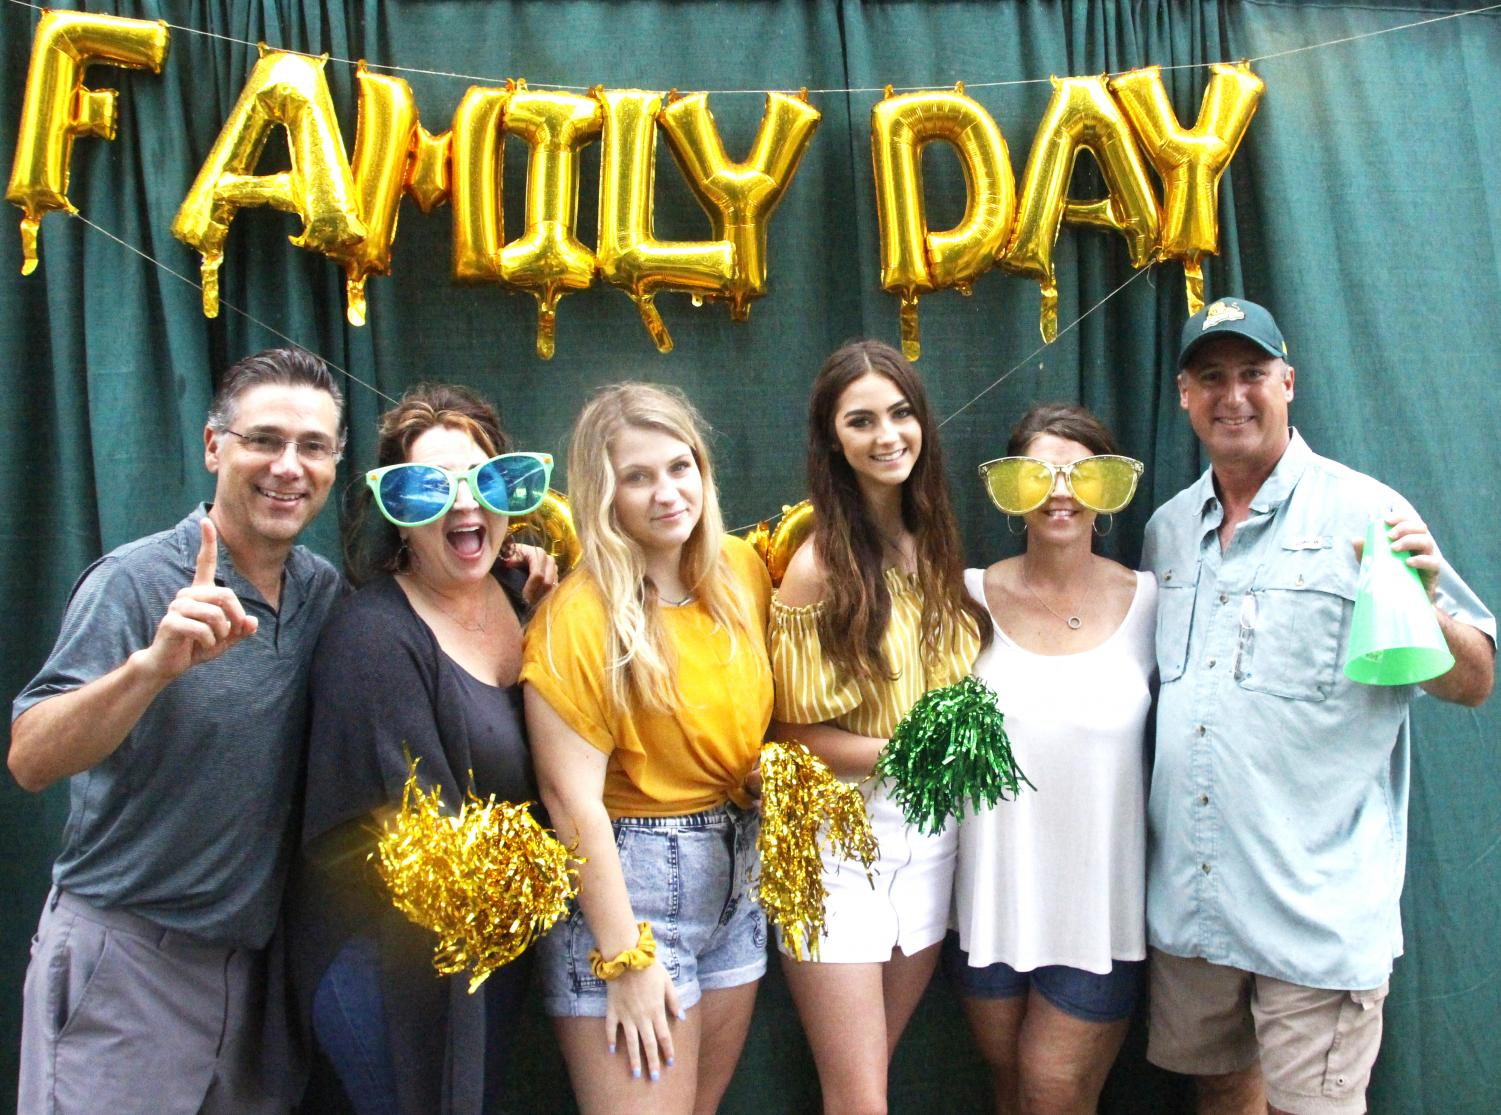 Despite the rainy weather, student and families participated in the Family Day tailgate before the